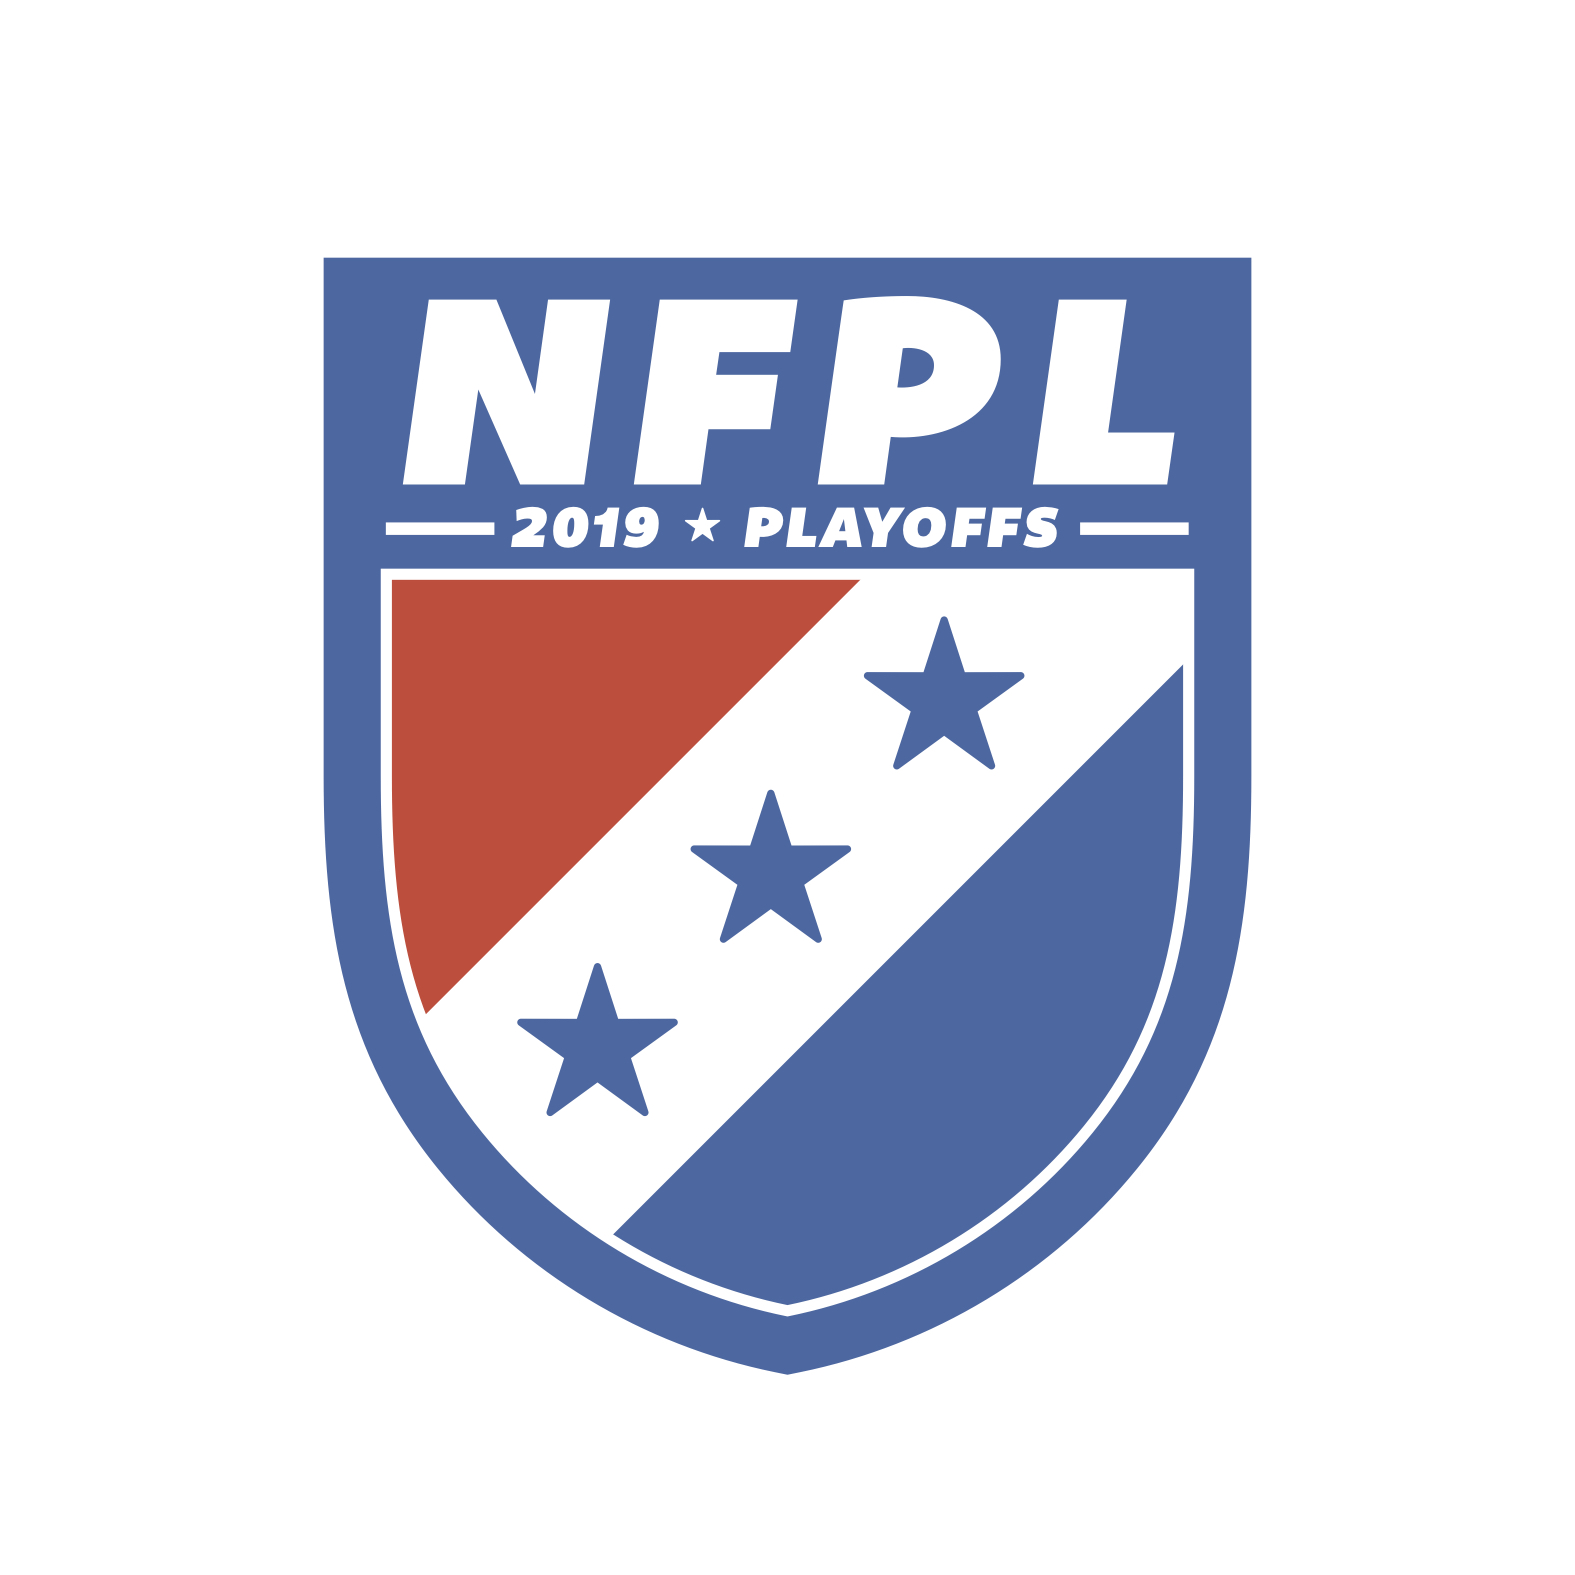 NFPL_logo_playoffs.jpg